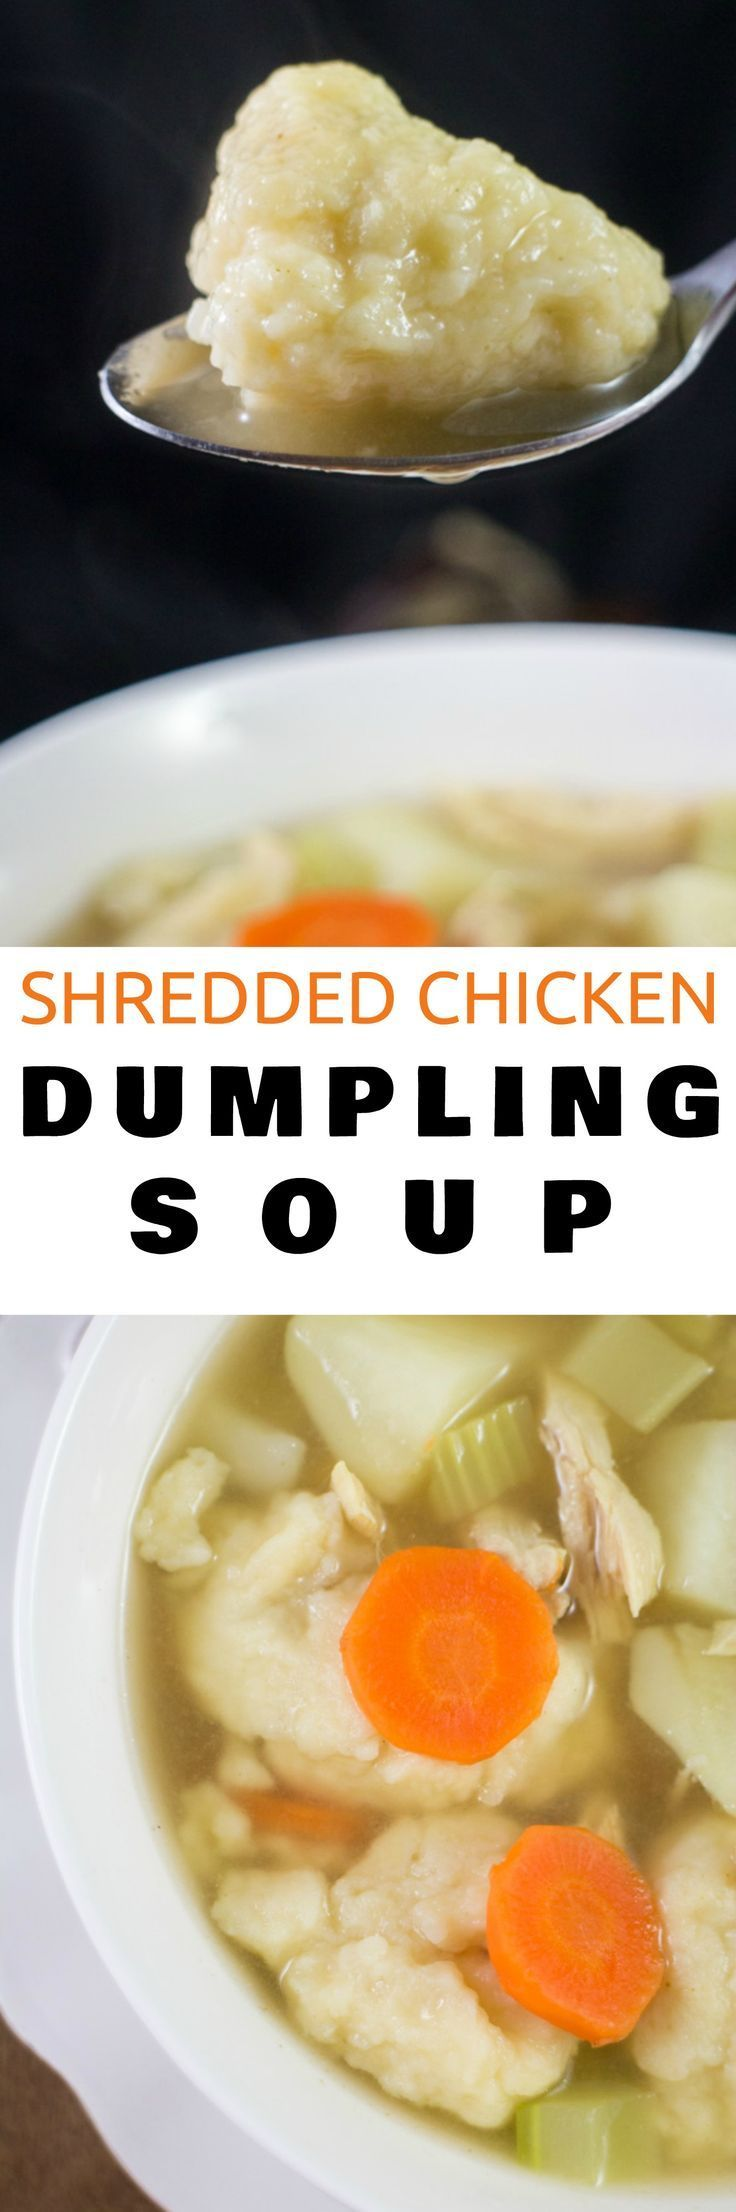 Easy to make recipe for Homemade Shredded Chicken Dumpling Soup with potatoes, carrots and celery. This creamy soup is a healthy comfort dinner food! Best served with biscuits to dip into the chicken broth! Mom, your families are going to love this!